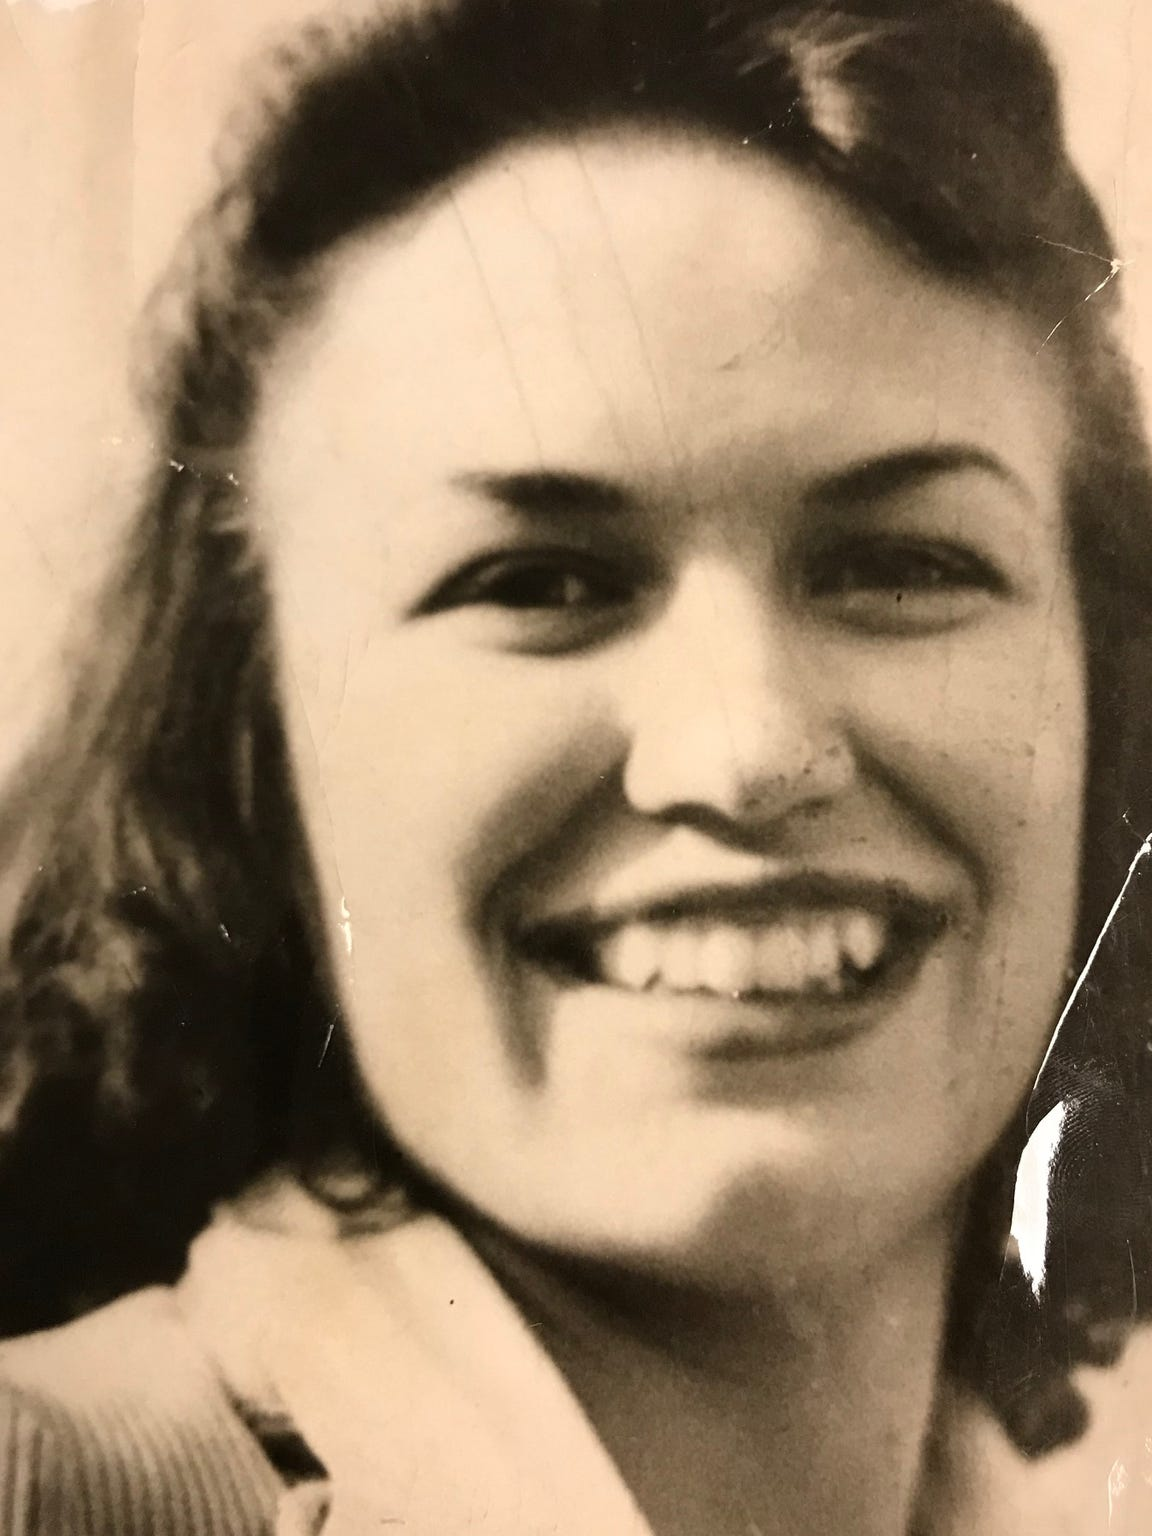 Mary Holland in an undated picture. The 33-year-old woman was Leslie Irvin's first victim. She was shot once in the head on Dec. 2, 1954 at Bellemeade Liquor Store. She was three-months pregnant at the time.